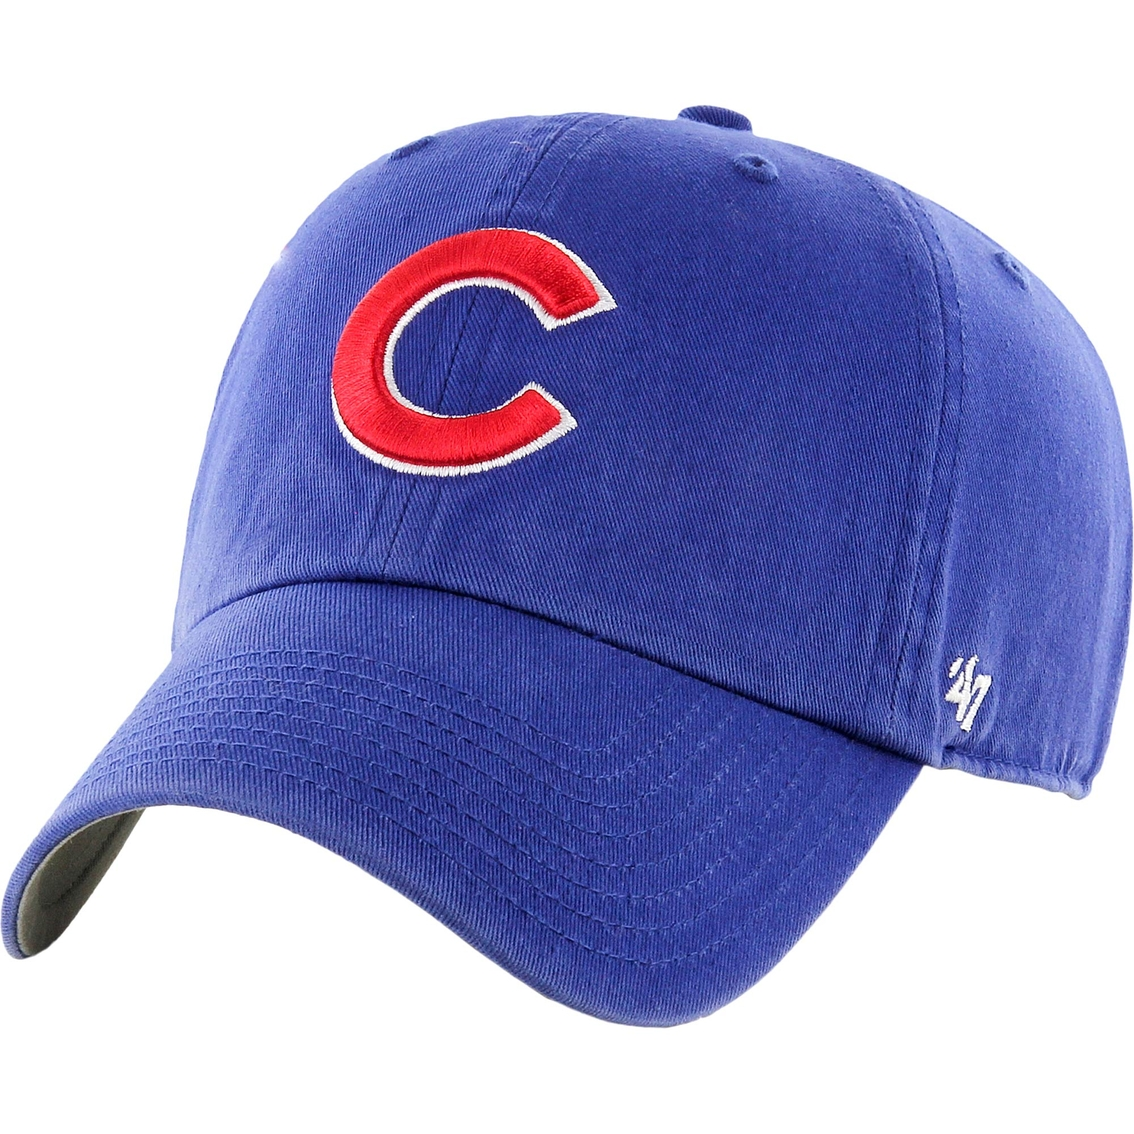 4c8c9f15fb5 47 Brand Mlb Chicago Cubs Men s Clean Up Baseball Cap